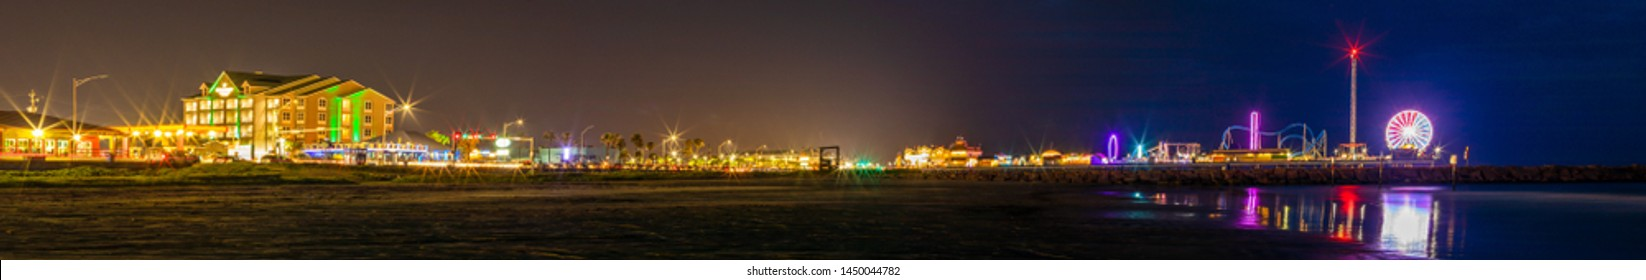 Galveston, Island city in the State of Texas, United States, view of the pier and gulf the coast at night.